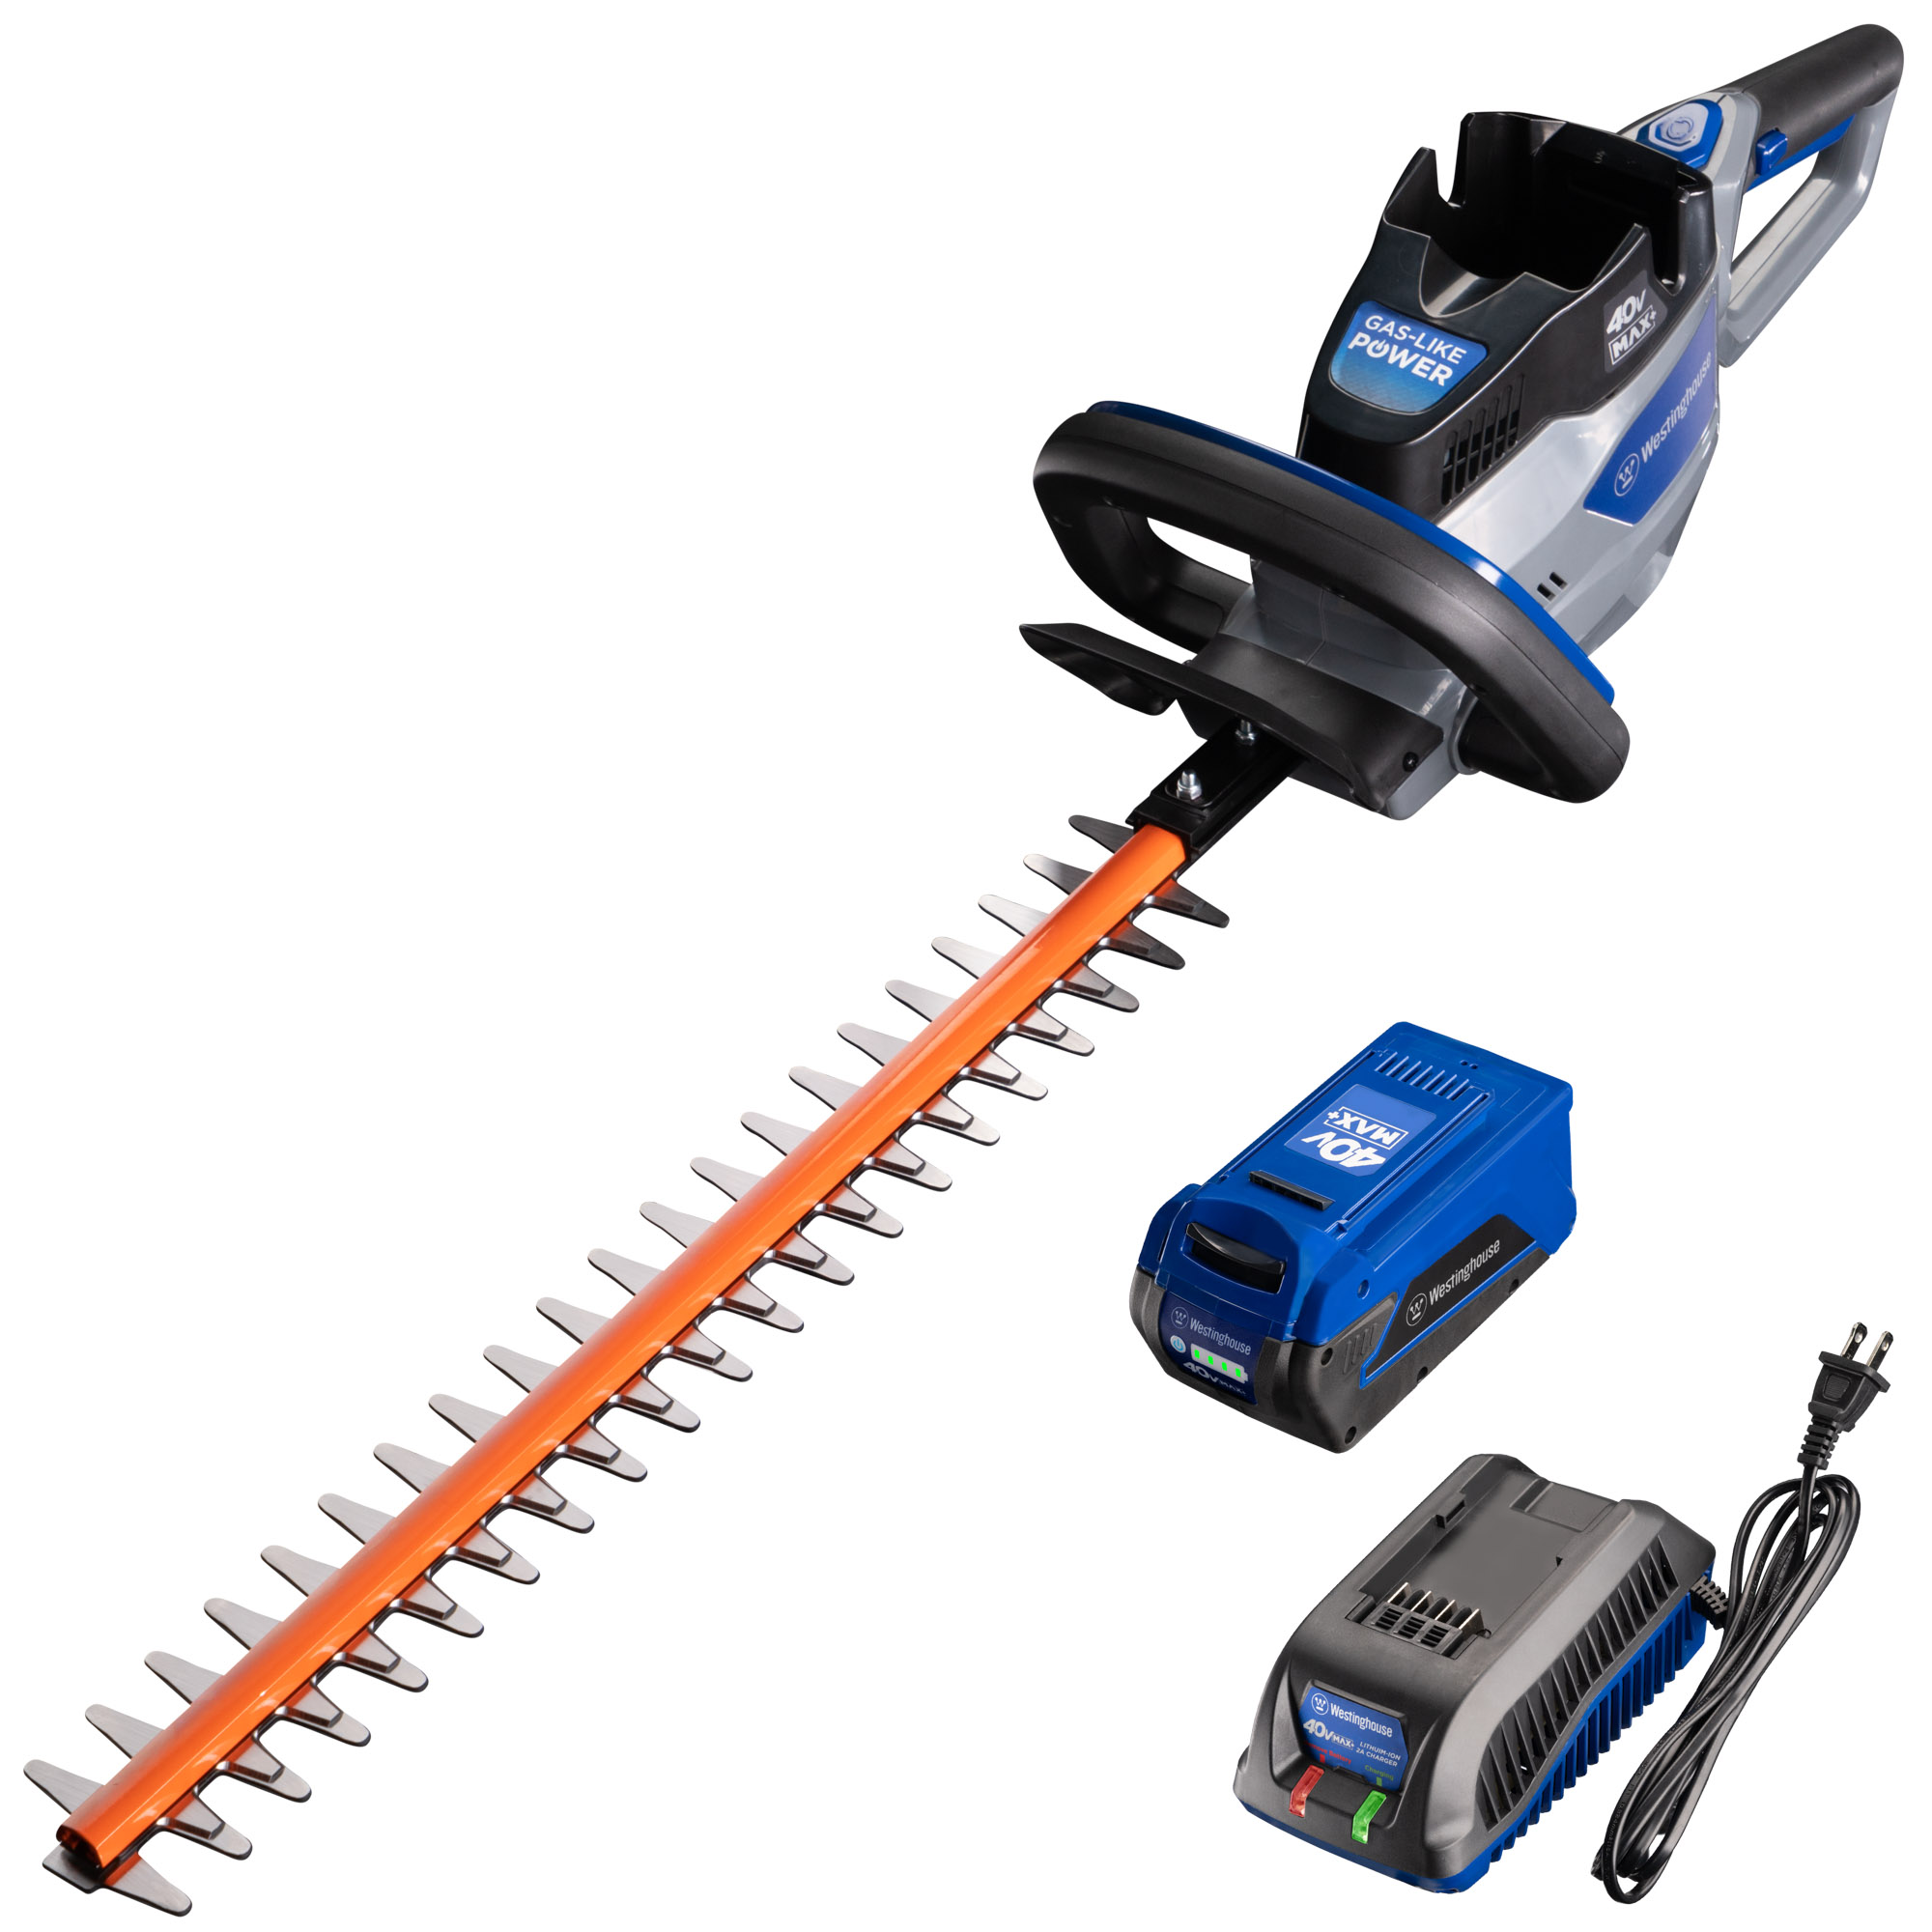 Westinghouse 40V Hedge Trimmer with 4.0 Ah Battery and Battery Charger, 4HT4AH4BC by Westinghouse